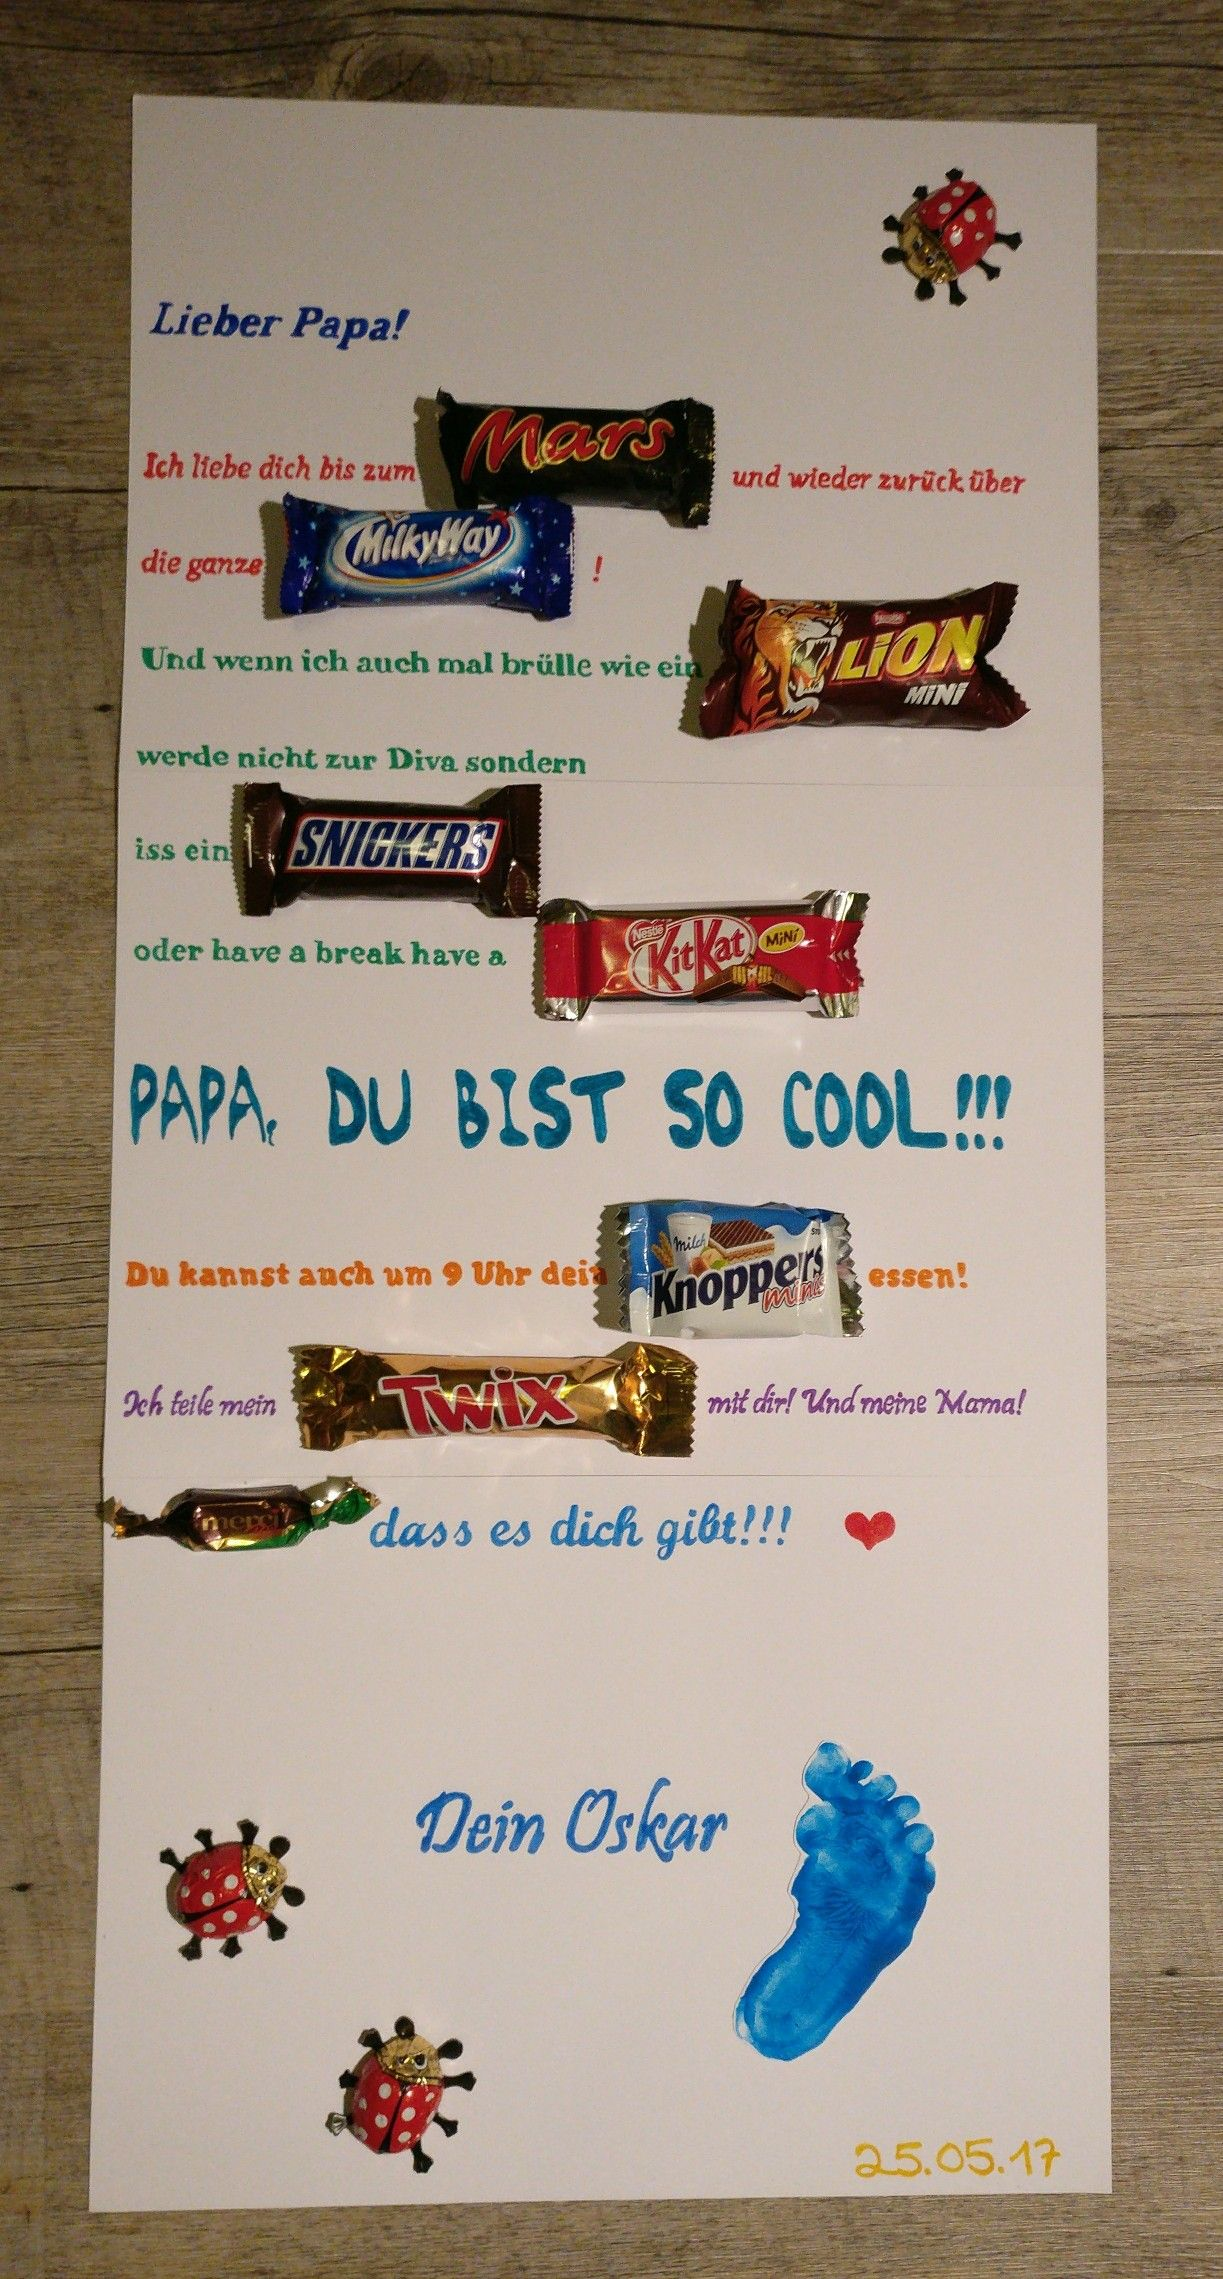 Vatertag Mars Milky Way Lion Snickers Kit Kat Knoppers Twix Merci ...